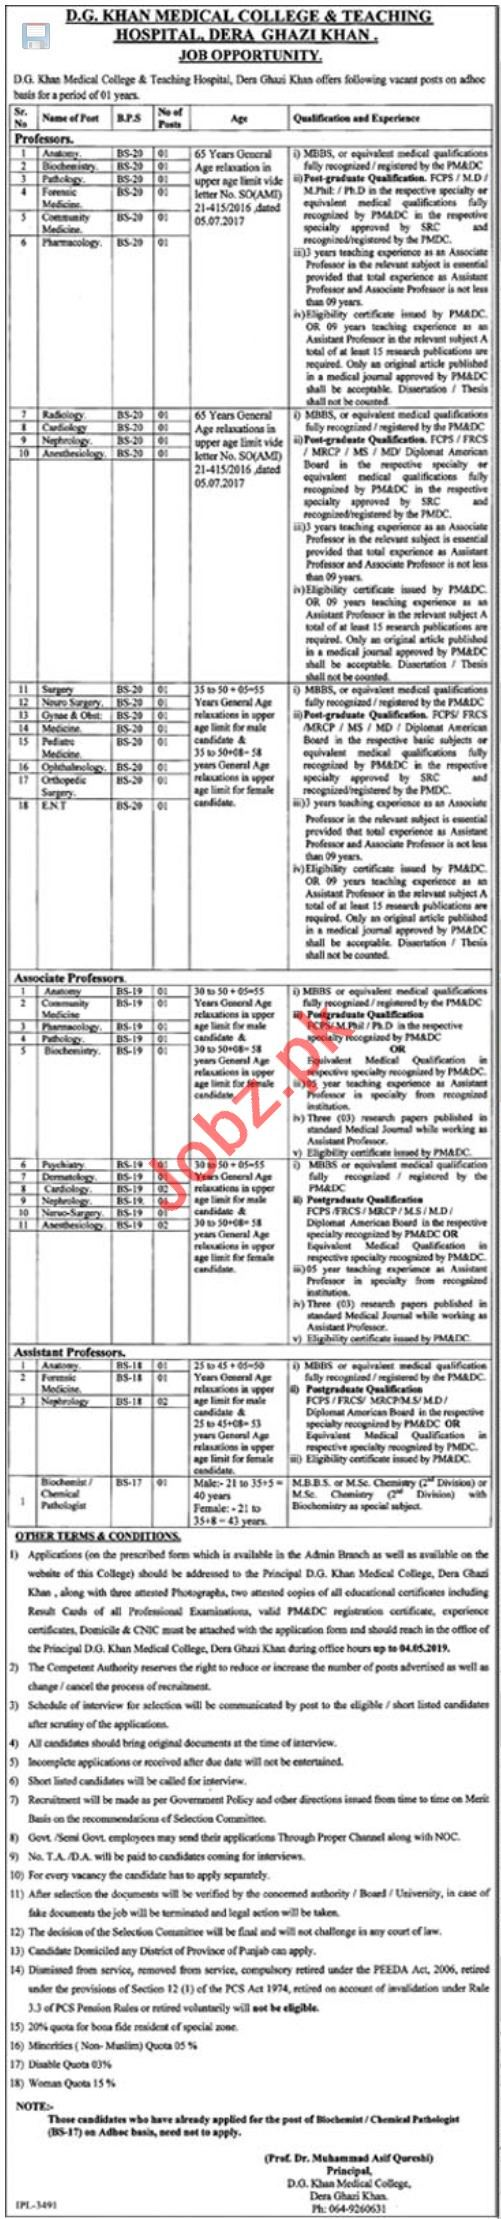 Medical College & Teaching Hospital Medical Job in DG Khan